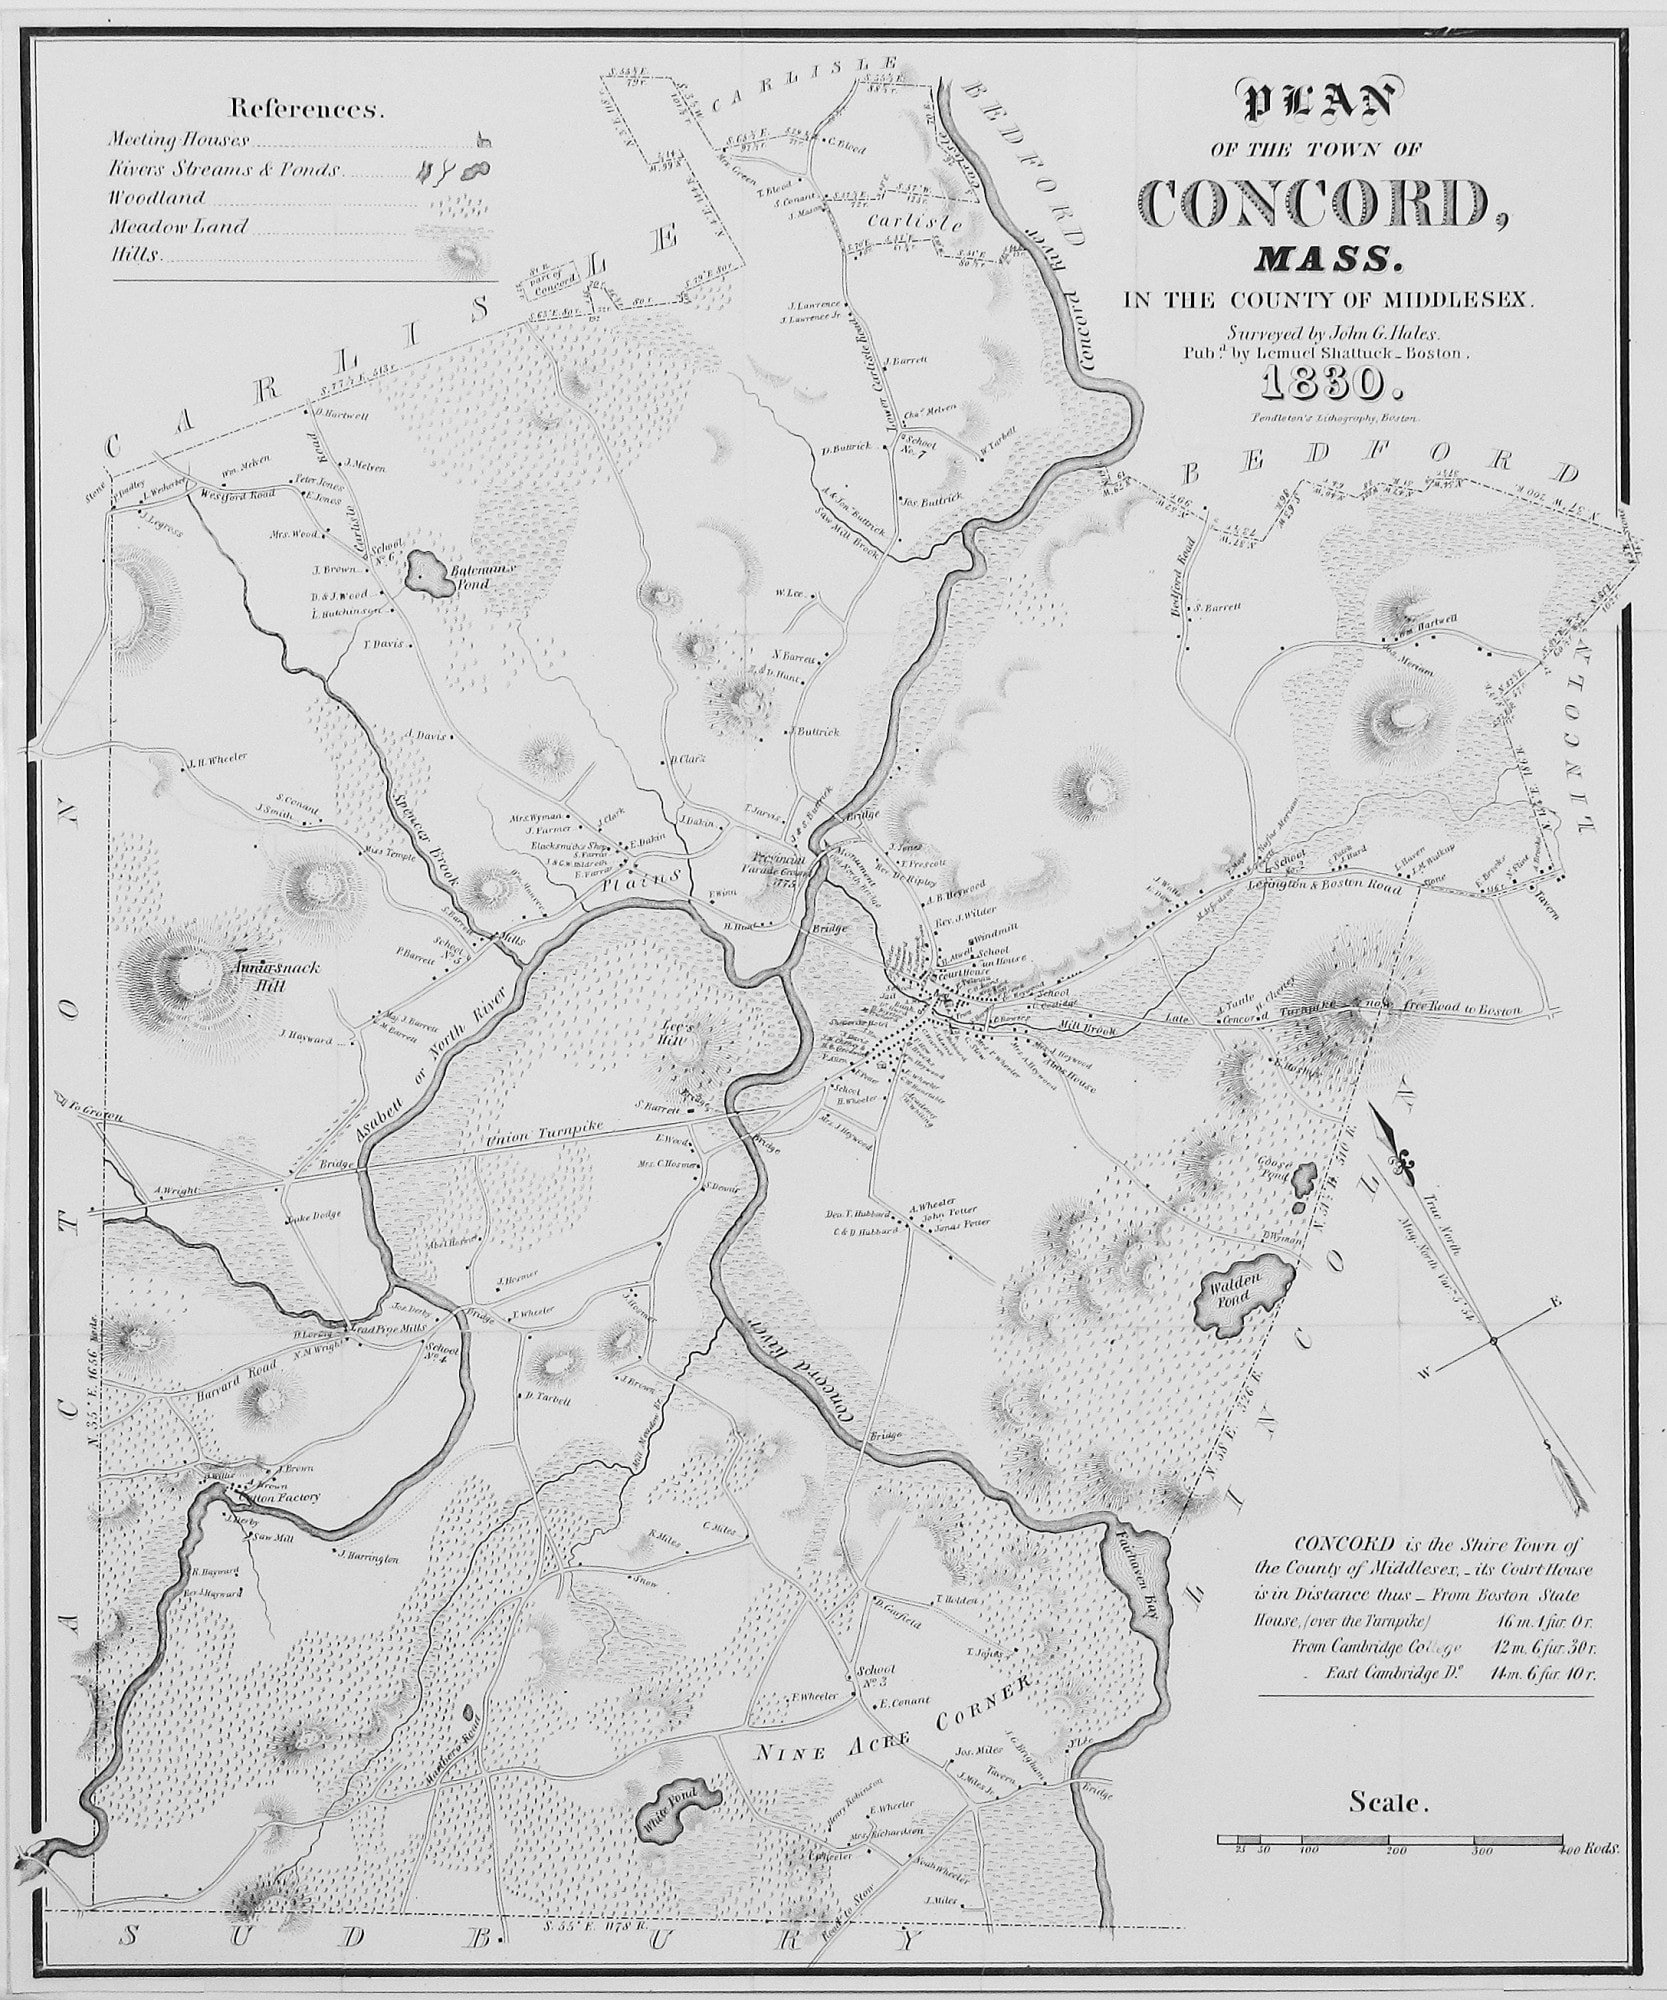 The first published map of Concord Mass Rare Antique Maps